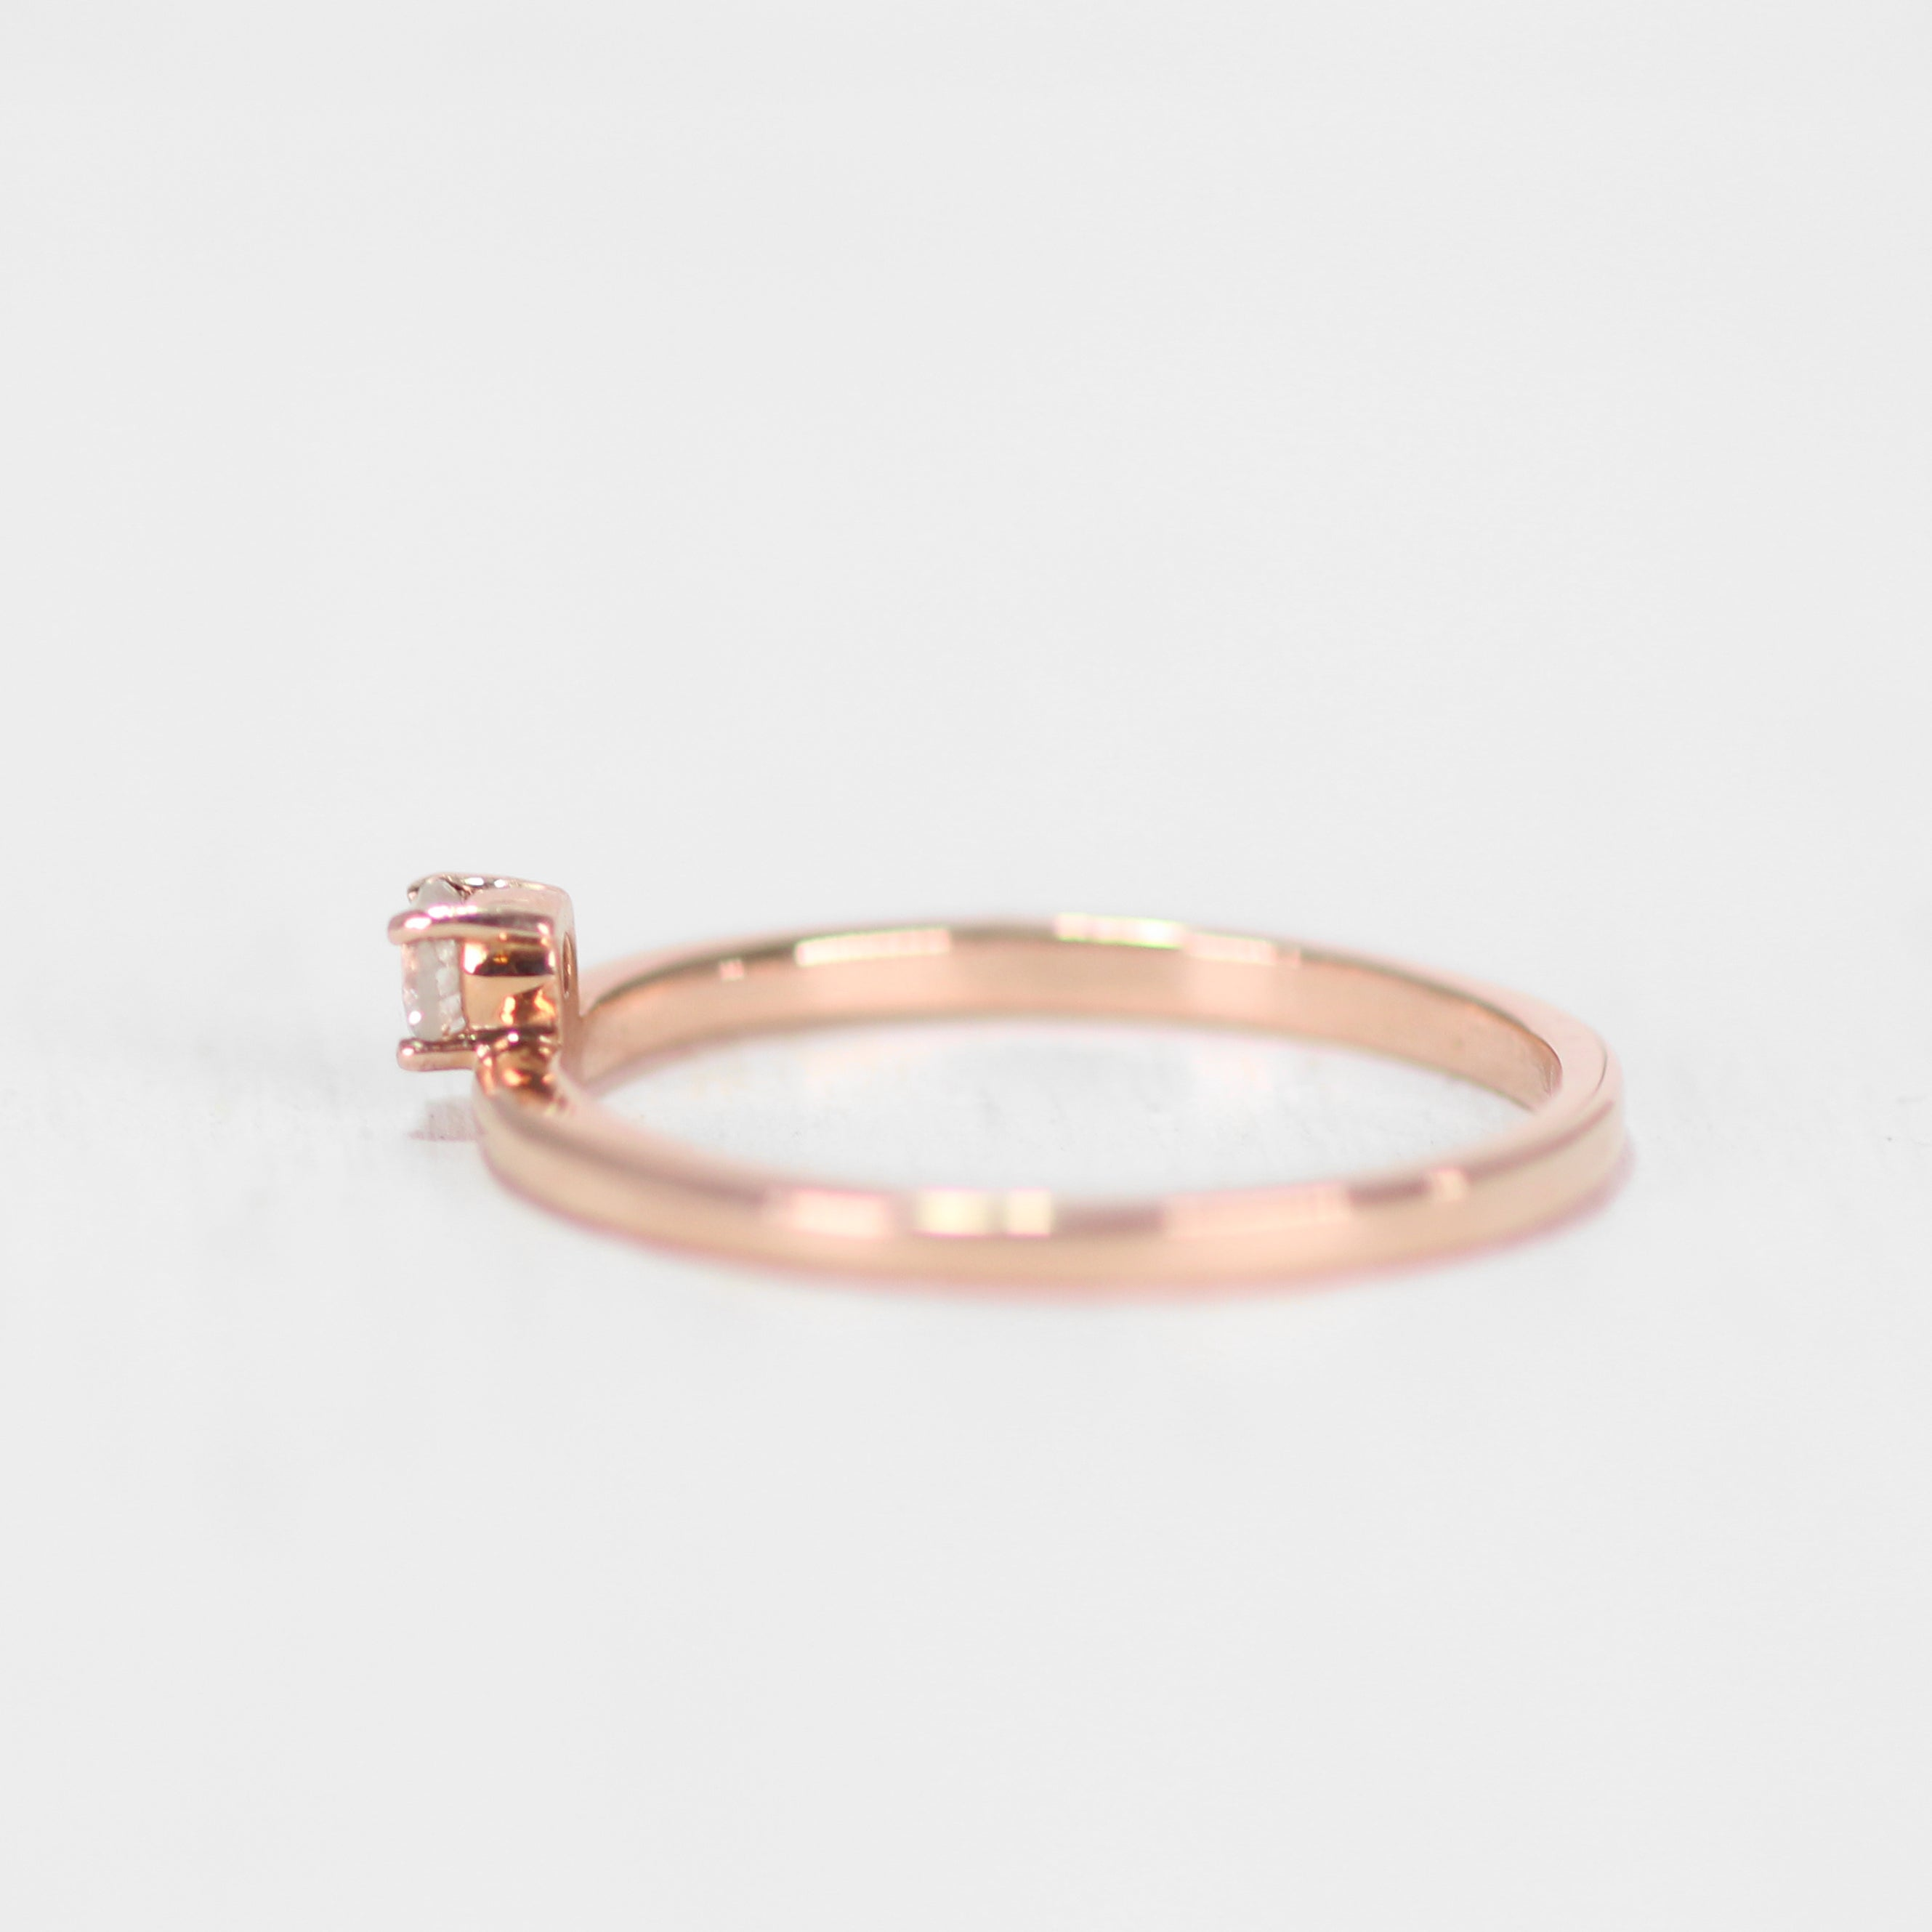 Najeal Ring - Asymmetrical Solitaire Diamond Ring in 14k Rose Gold - Midwinter Co. Alternative Bridal Rings and Modern Fine Jewelry